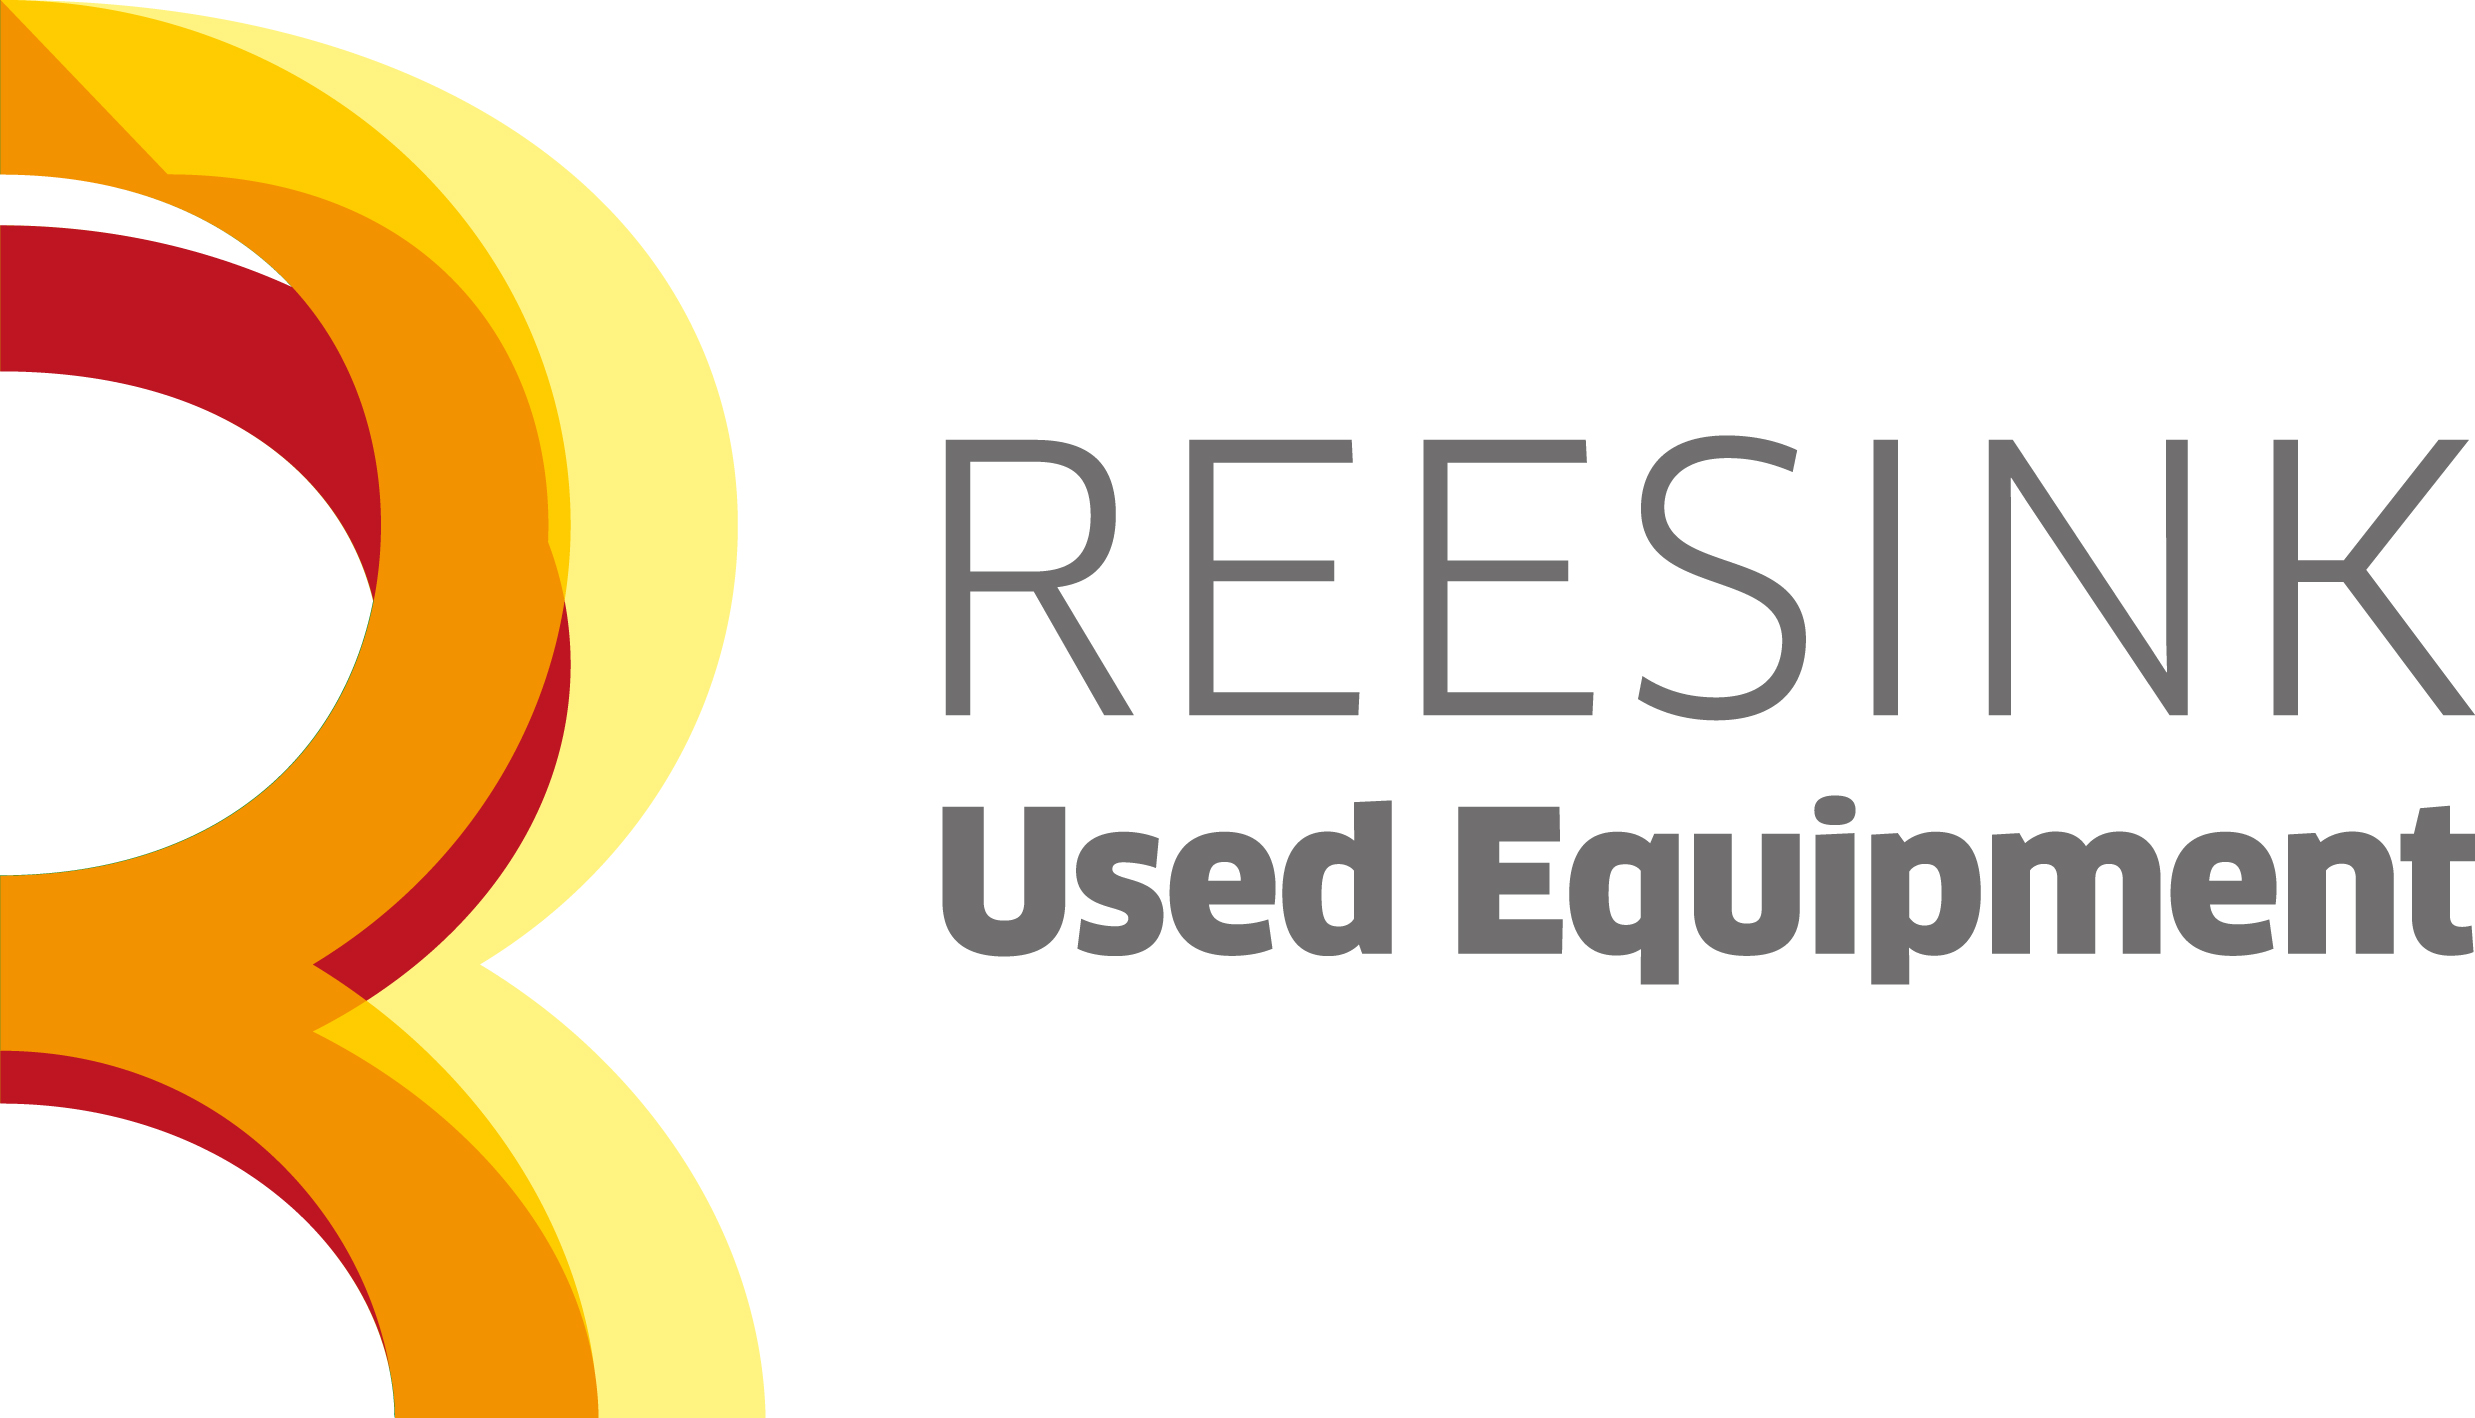 Reesink Used Equipment, Material Handling, Turfcare, Construction, Agriculture